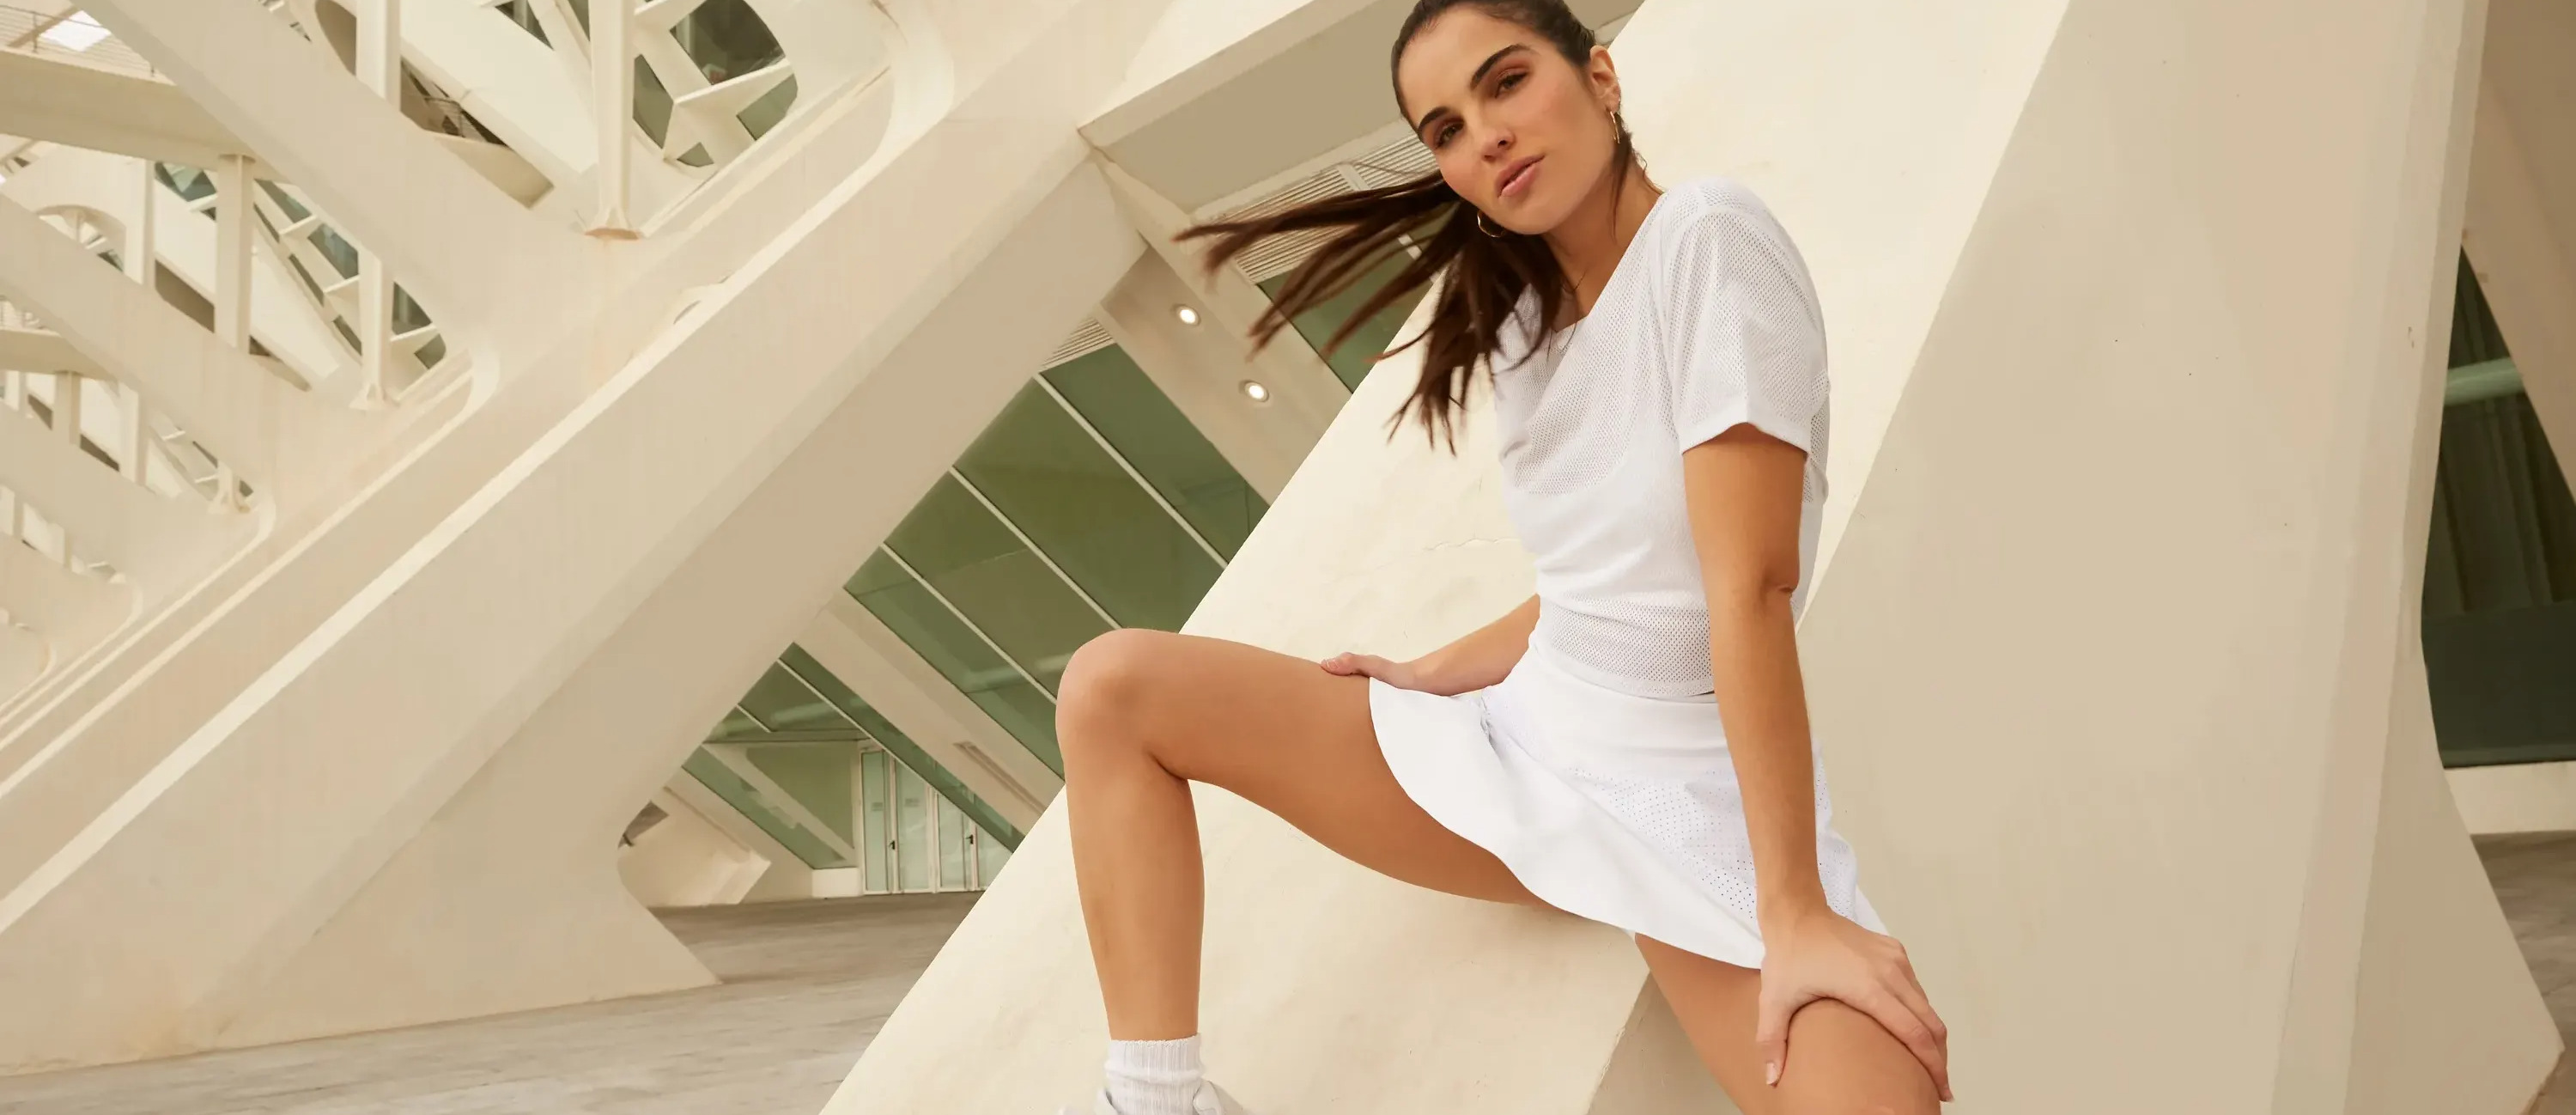 Shop the Tennis Capsule featuring the Tie Back Mesh Tee and Rally Skort